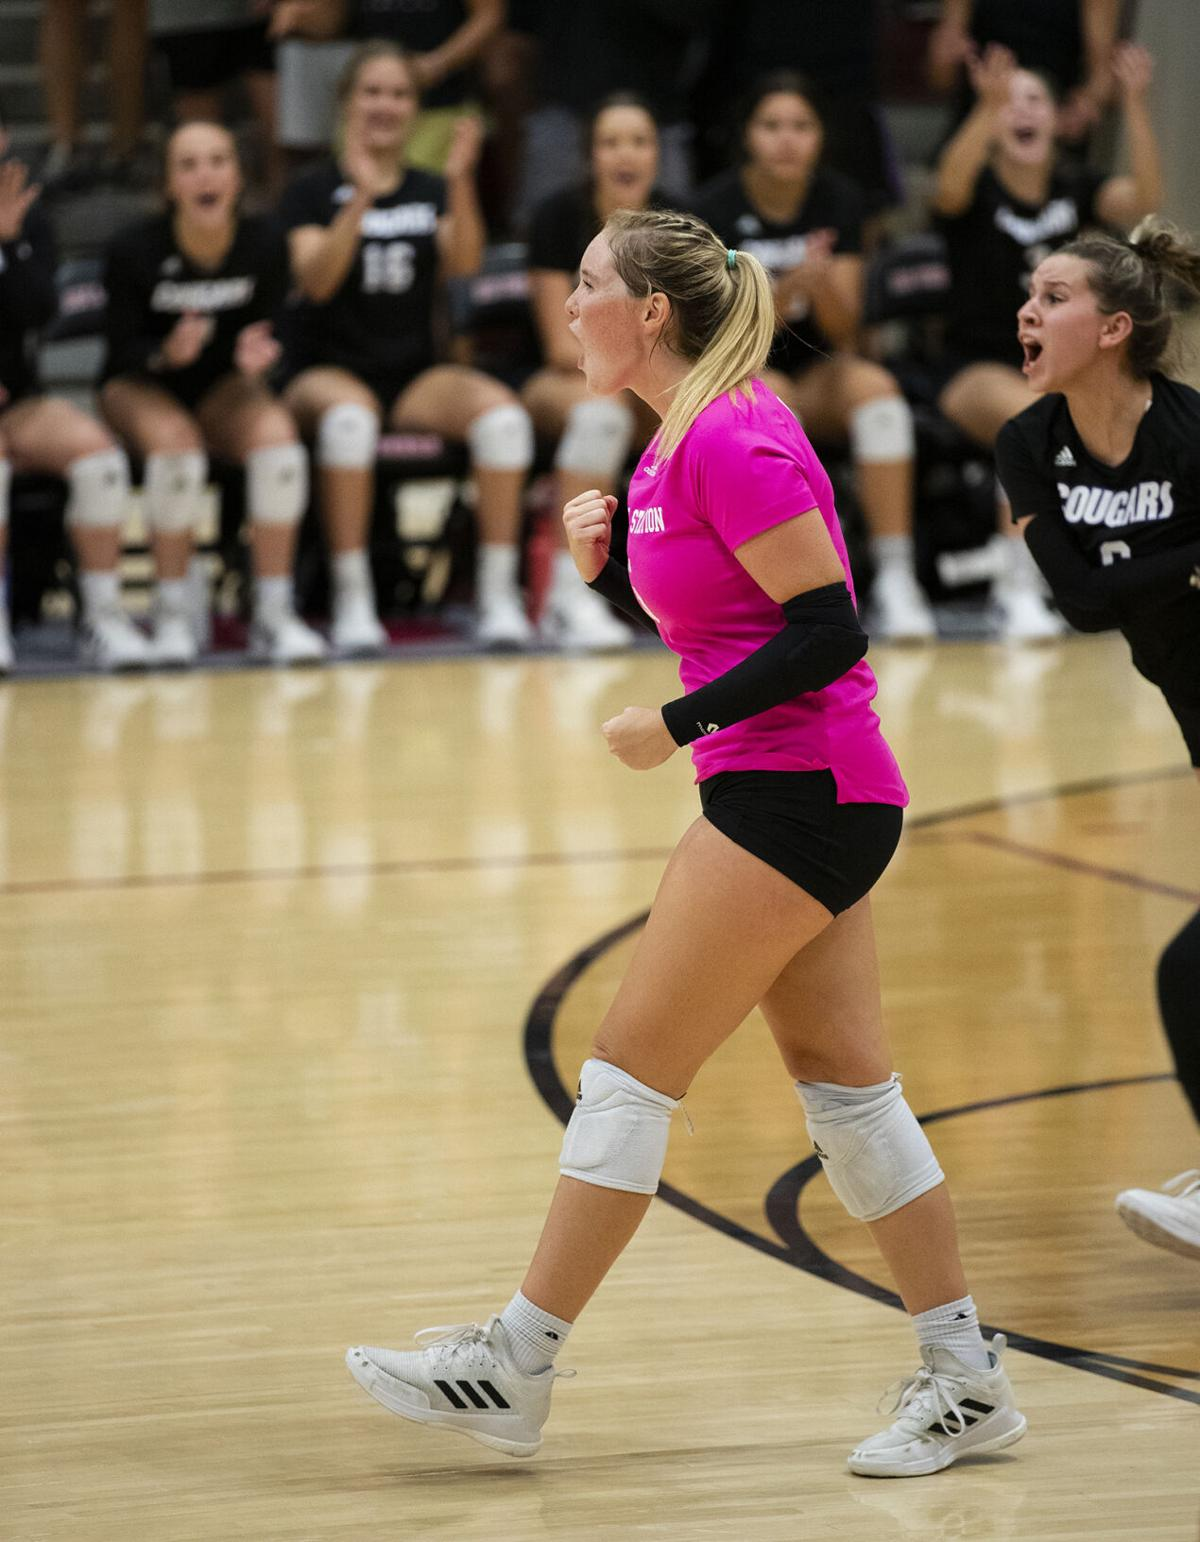 College Station vs. Consol volleyball one